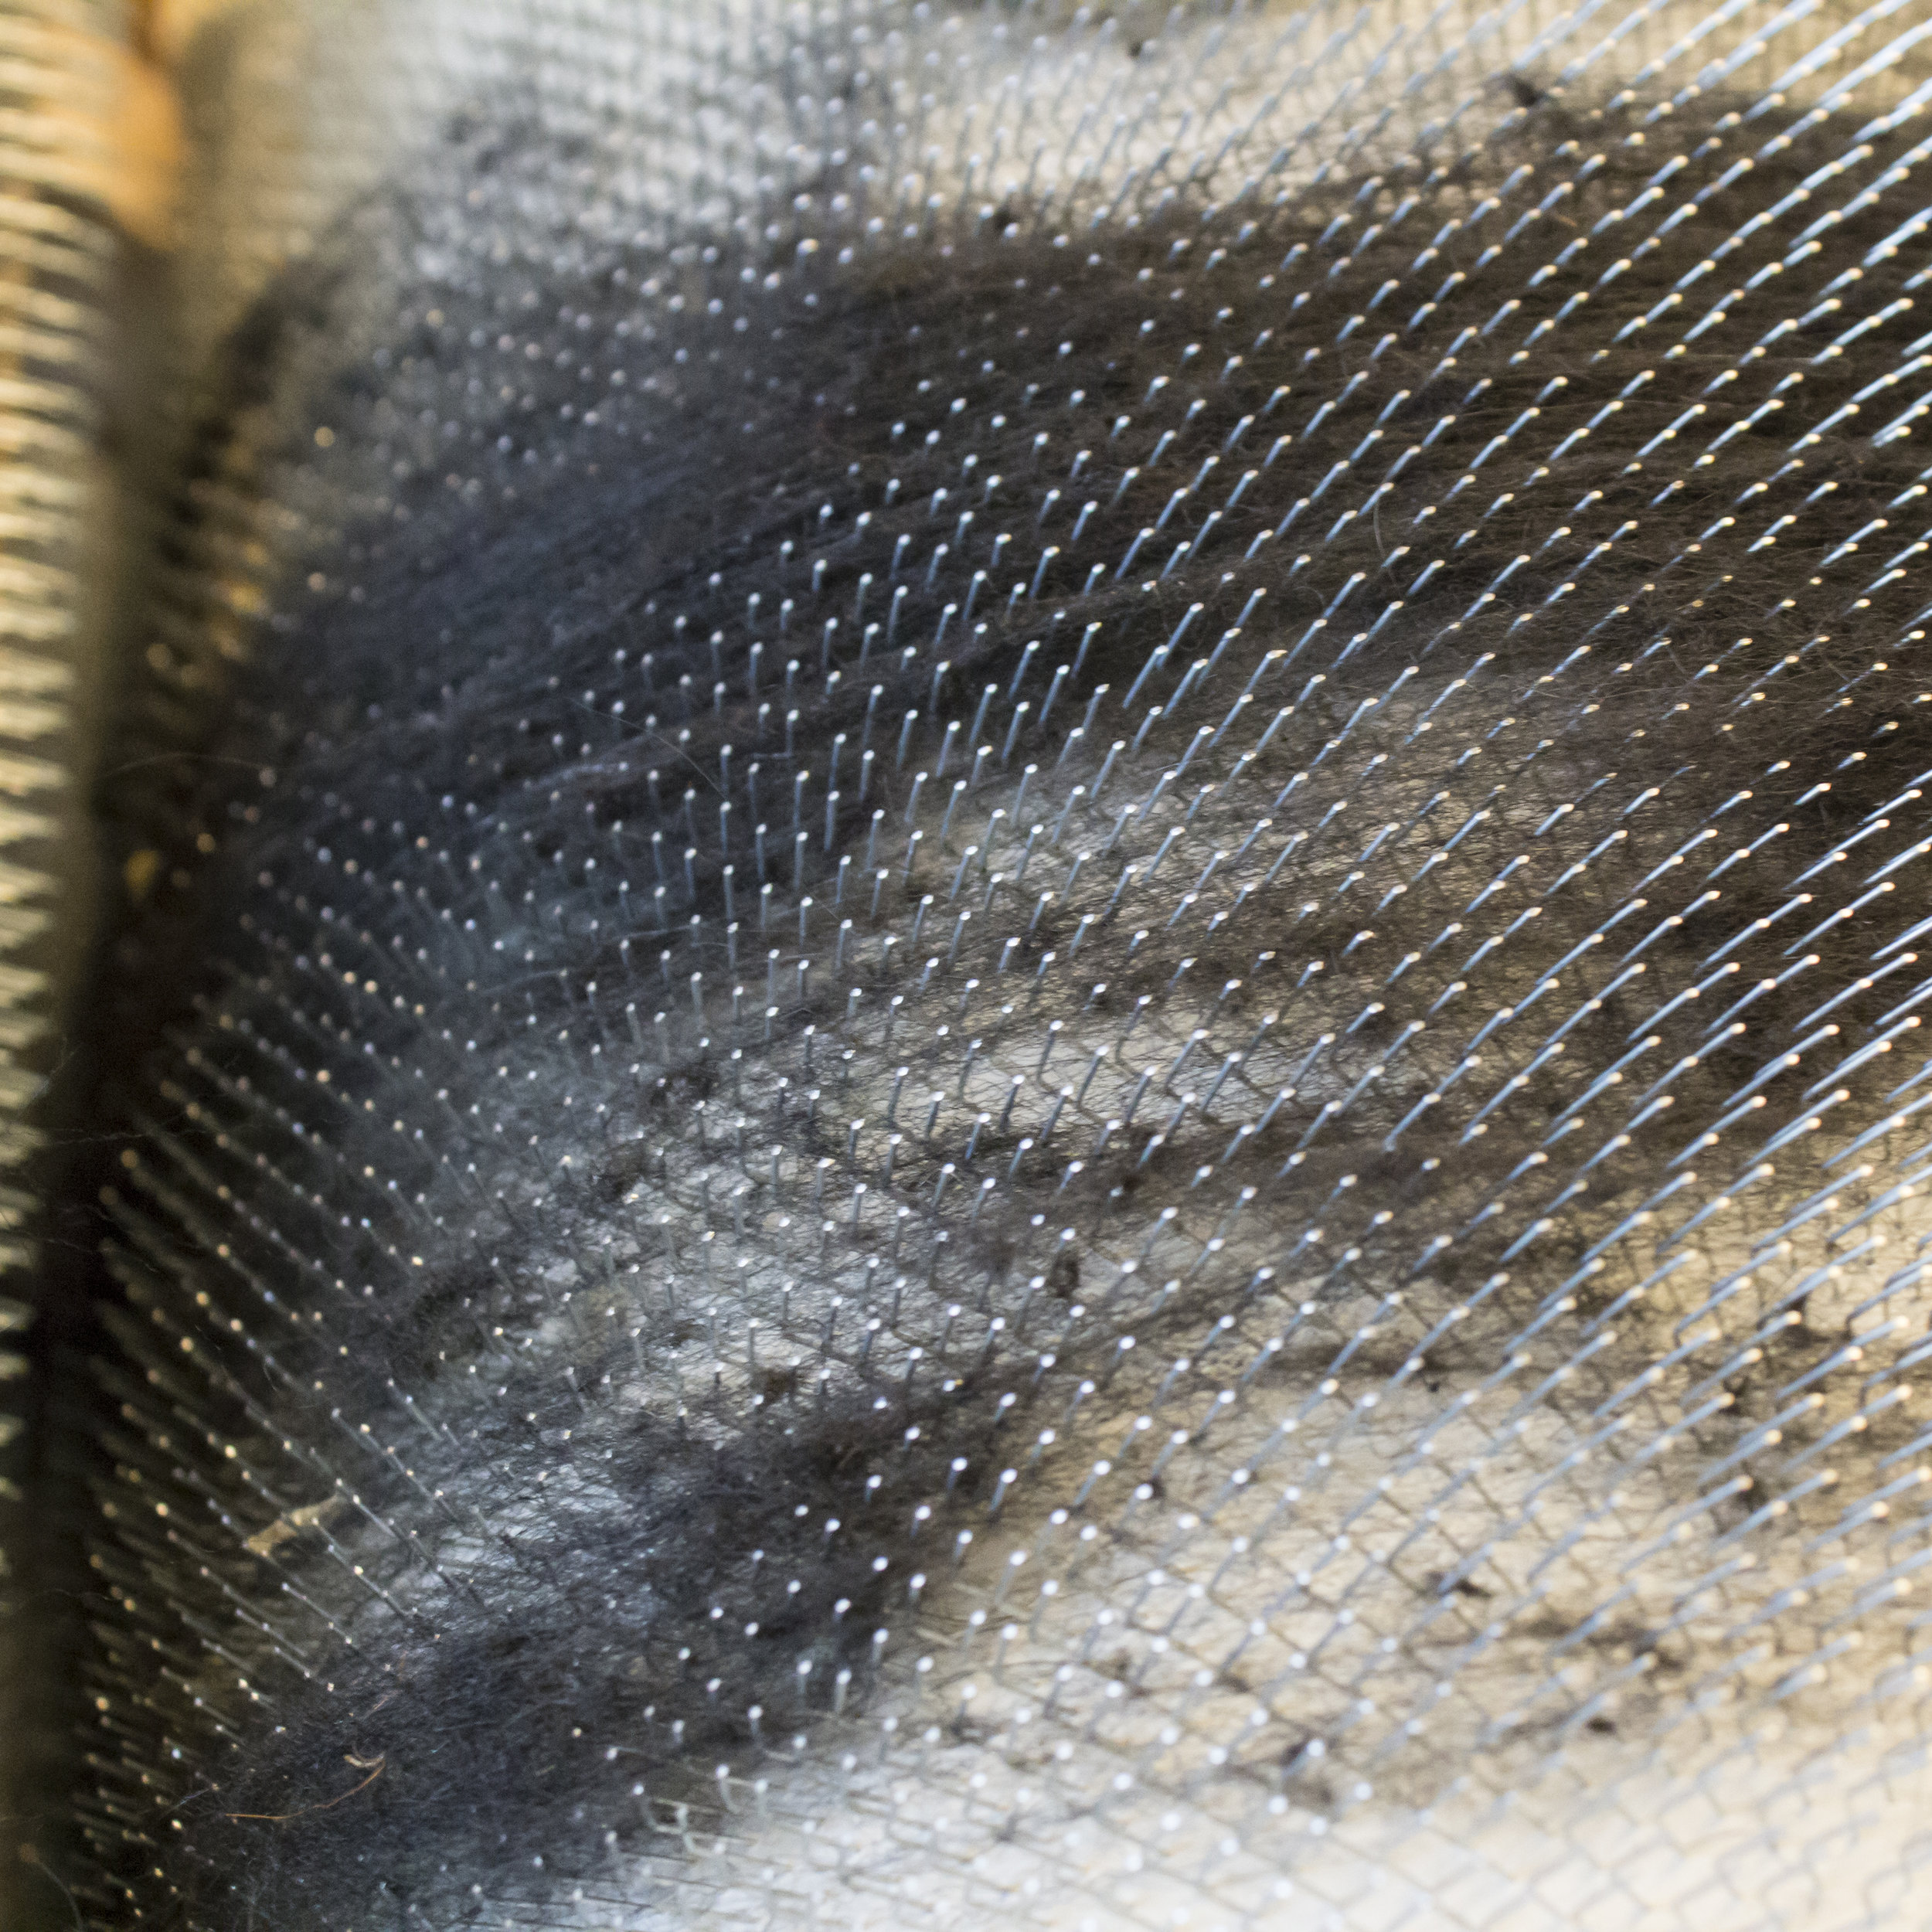 Use a dark or grey wool to break in a brand new drum carder or carding cloth. Not an issue if you obtain a used one.